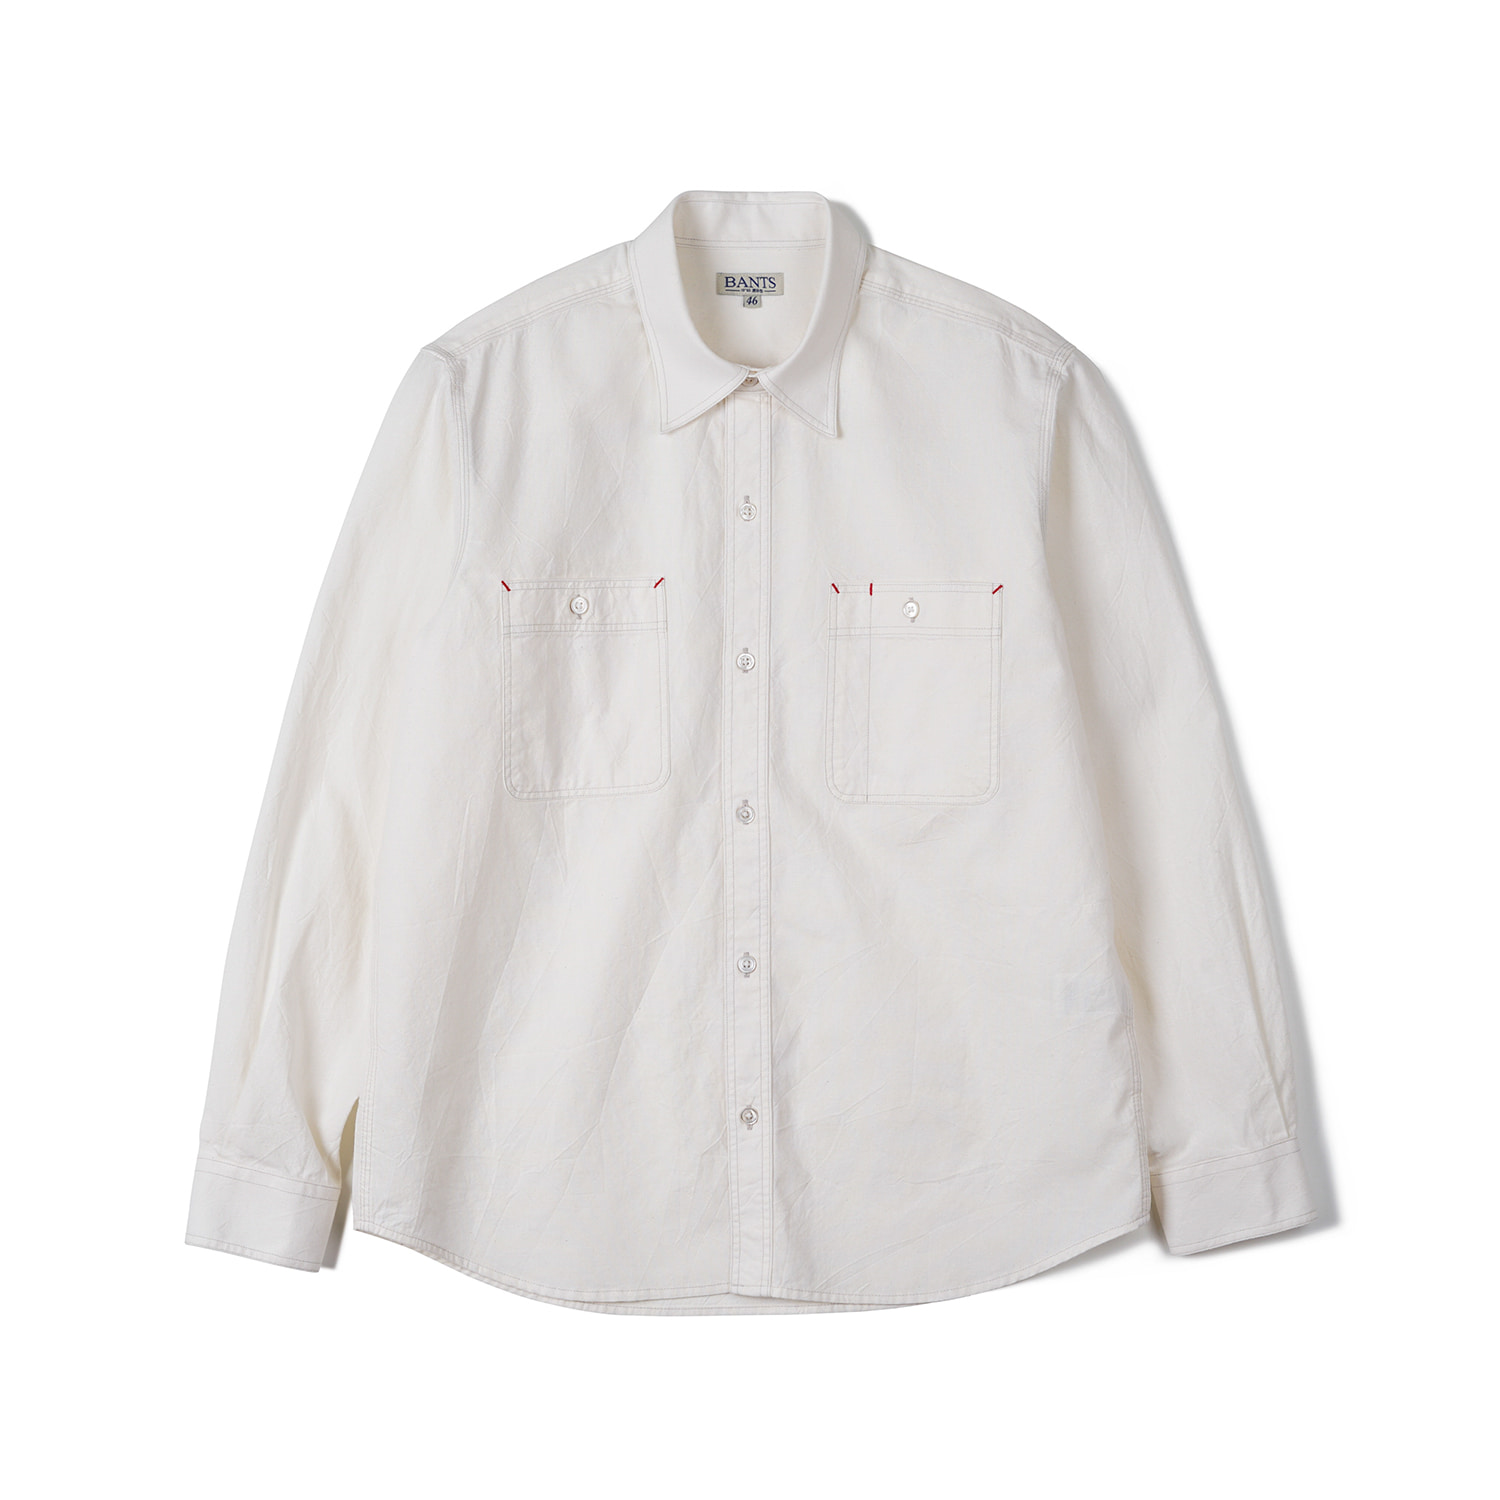 FLB Chambray Cotton Work Shirt - Off WhiteBants(반츠)